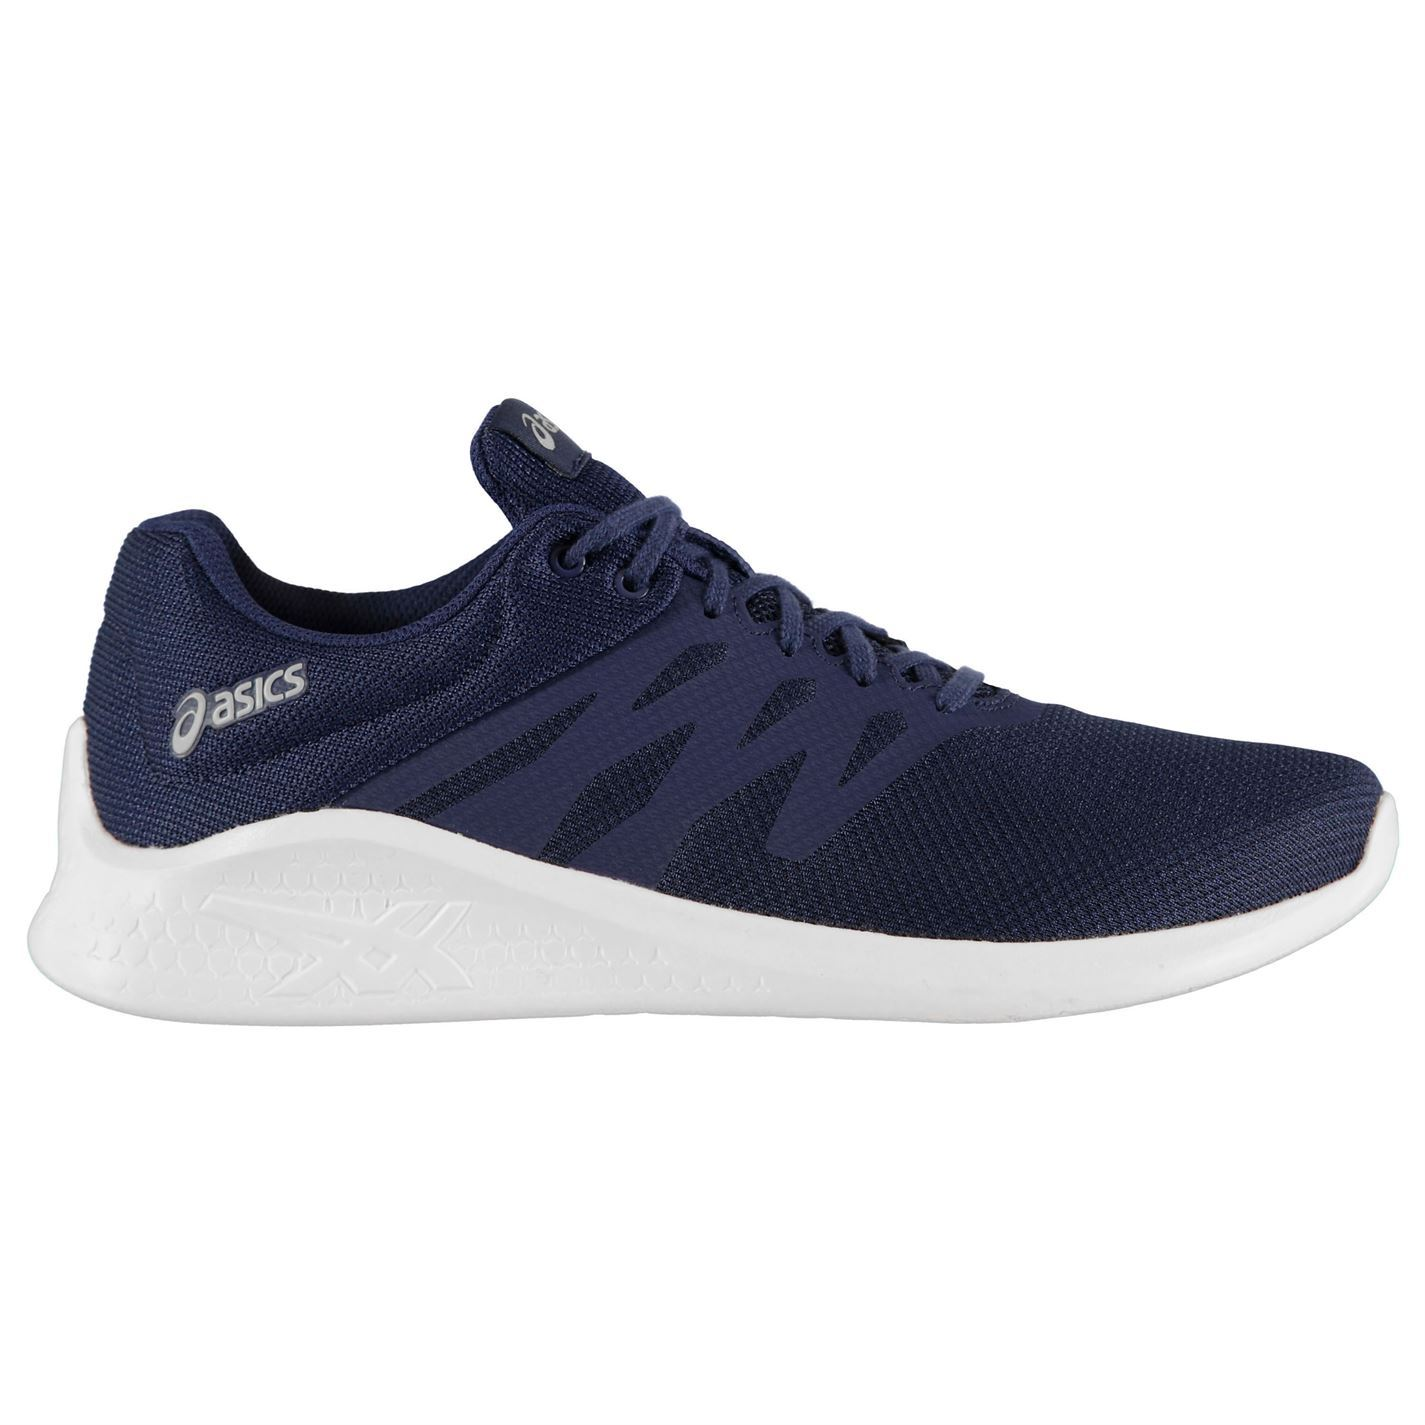 ropa tenis asics hombre joggers mujer